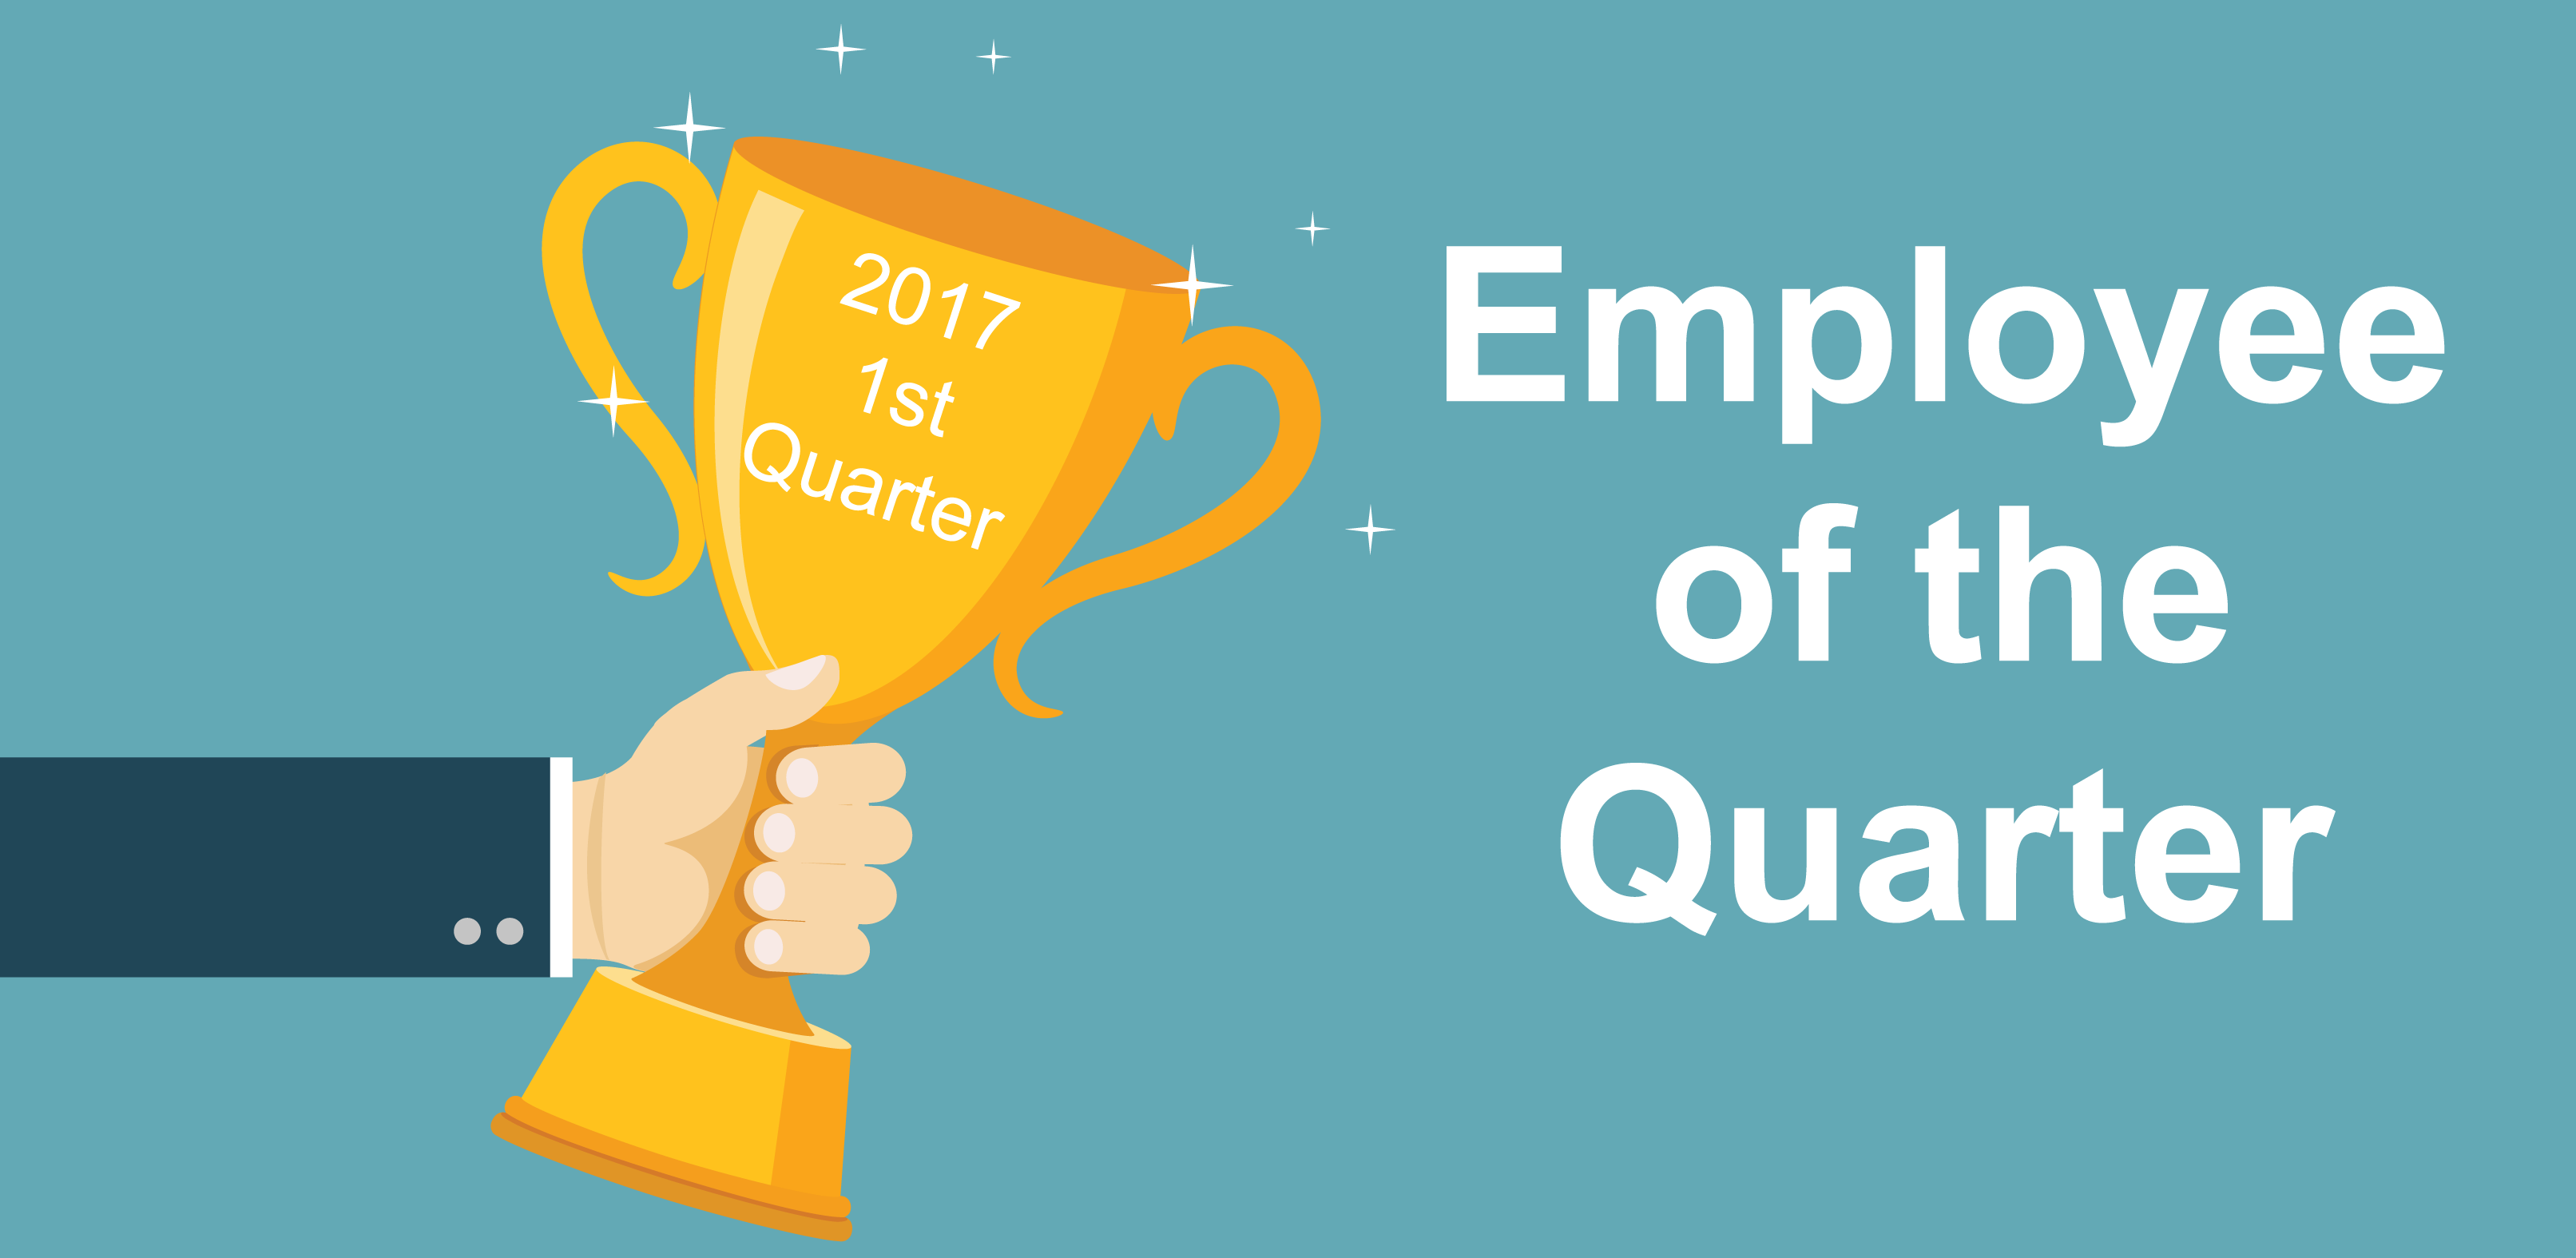 Employee of the Quarter Trophy - 2017 1st Quarter-01.png